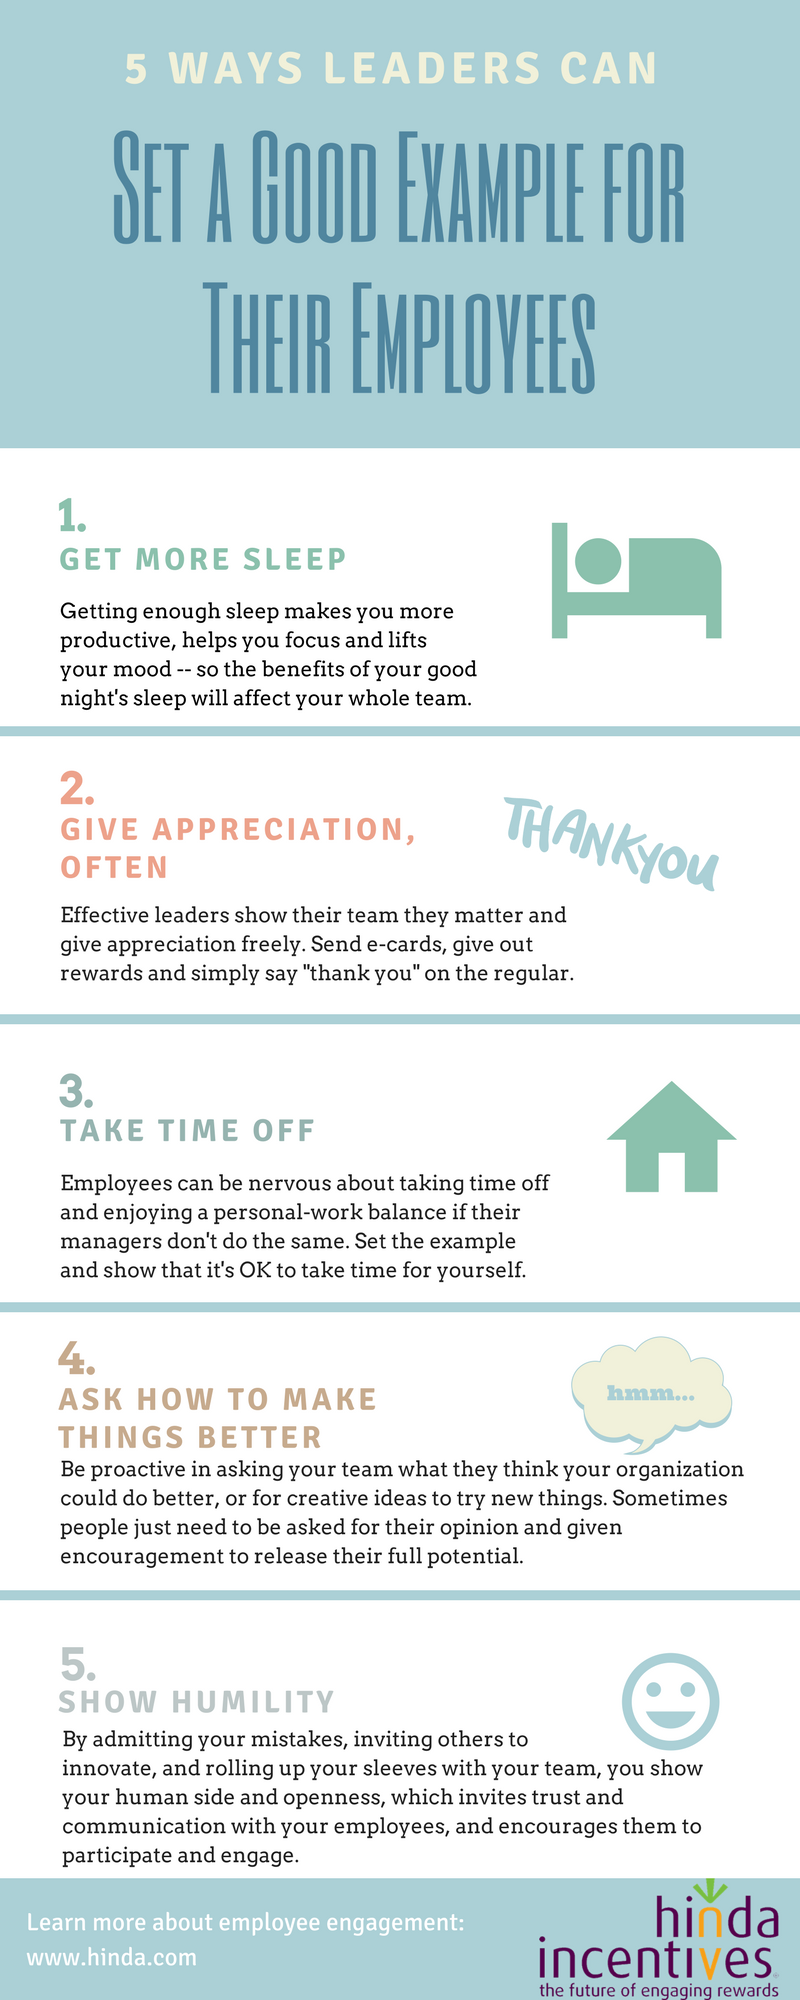 5 ways leaders can set a good example for their employees our infographic shows five ways to set a good example for your employees and create a more engaged collaborative place to work